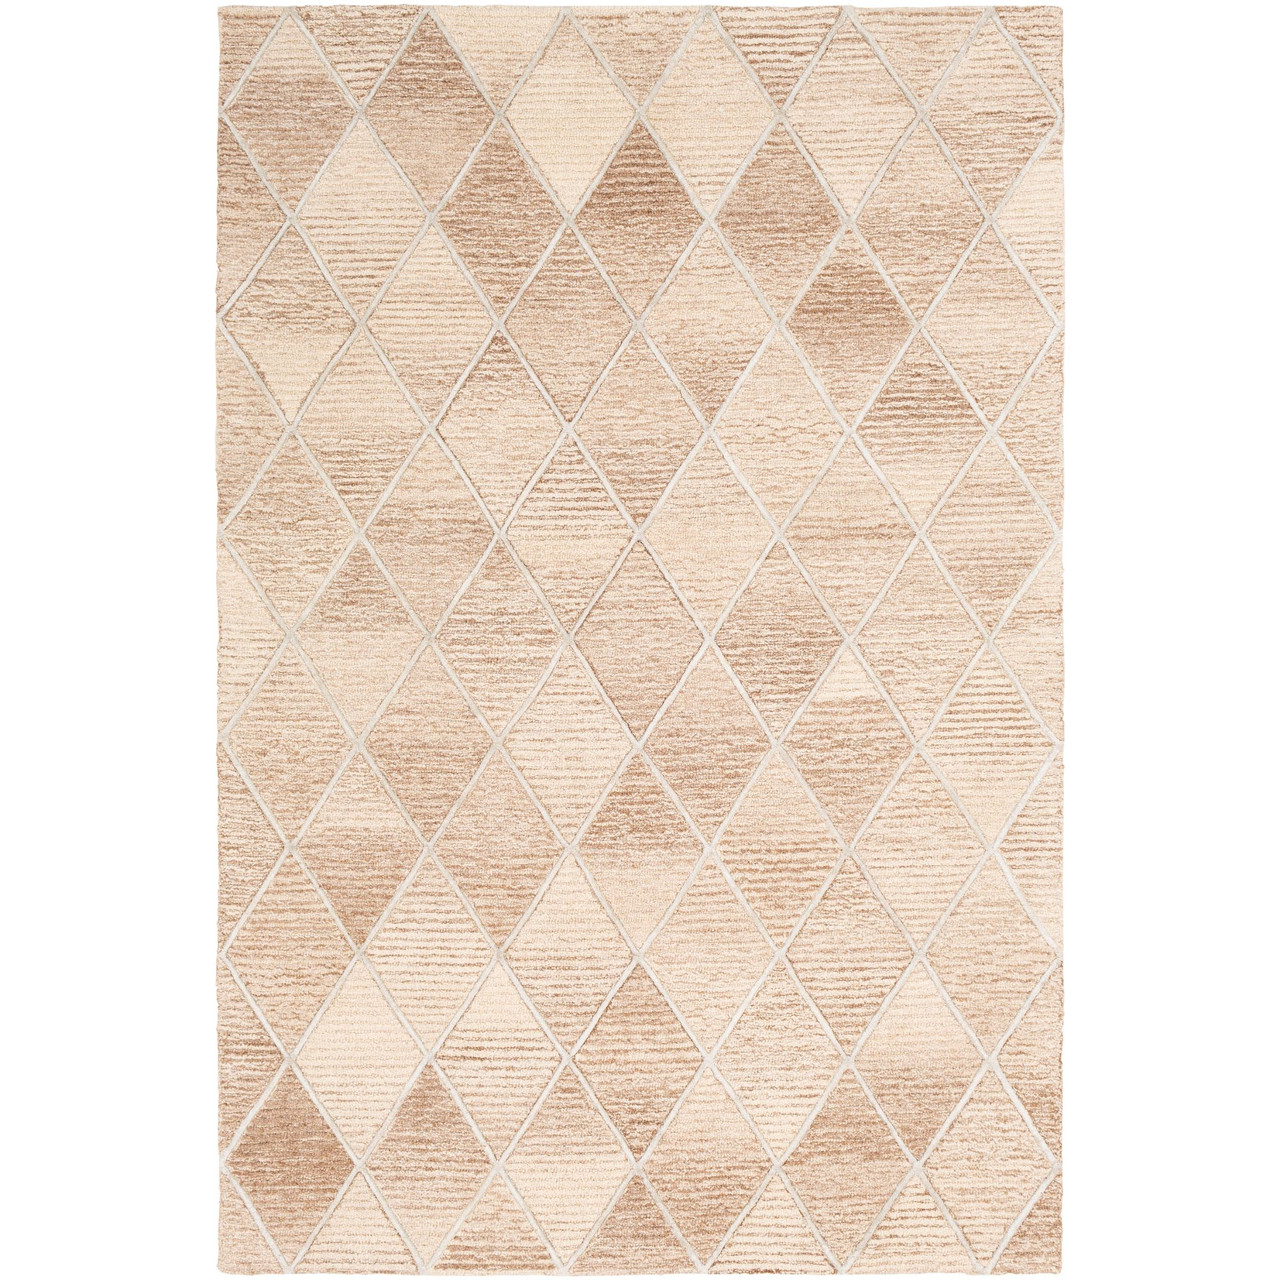 9 X 12 Diamond Patterned White Beige Rectangular Area Throw Rug Christmas Central